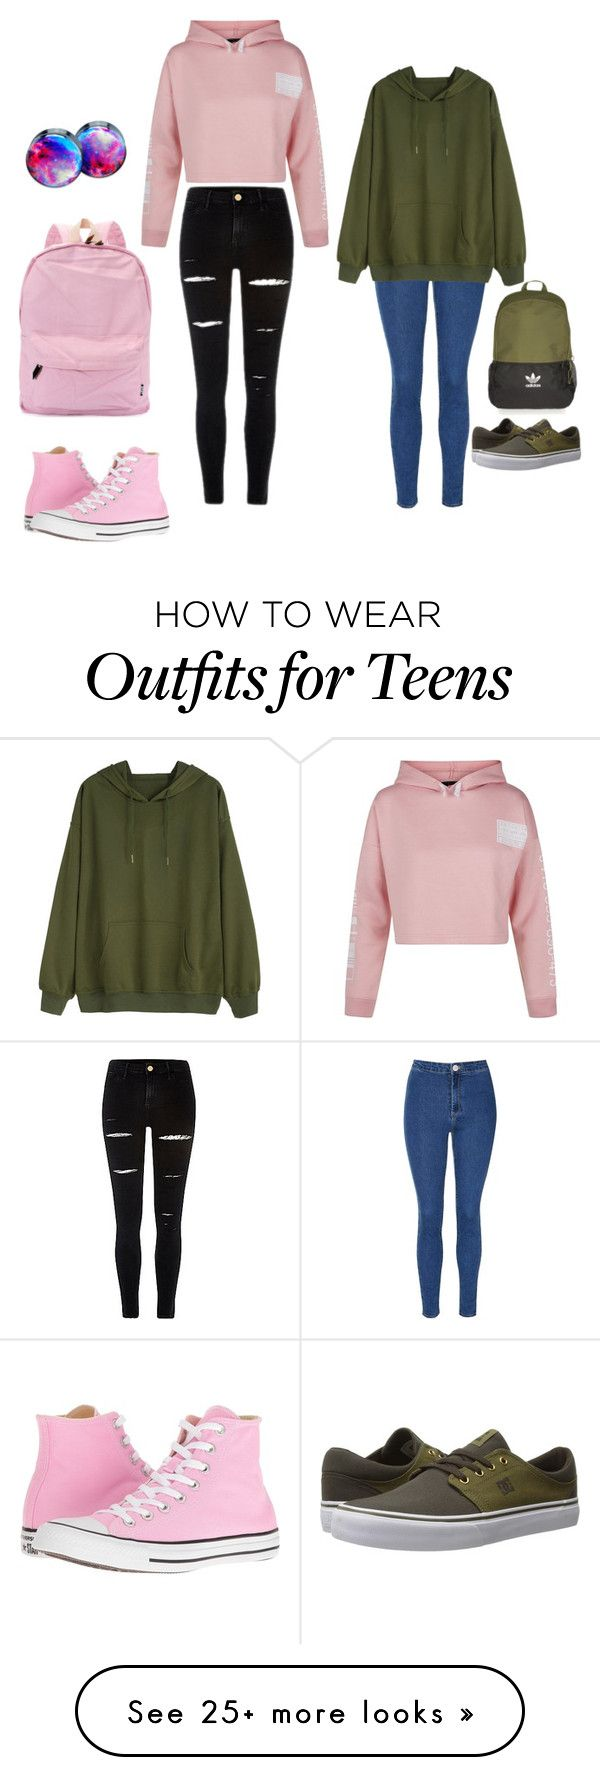 """""""School outfits"""" by shanna-carbonneau on Polyvore featuring New Look, Converse, Glamorous, DC Shoes and Topshop"""